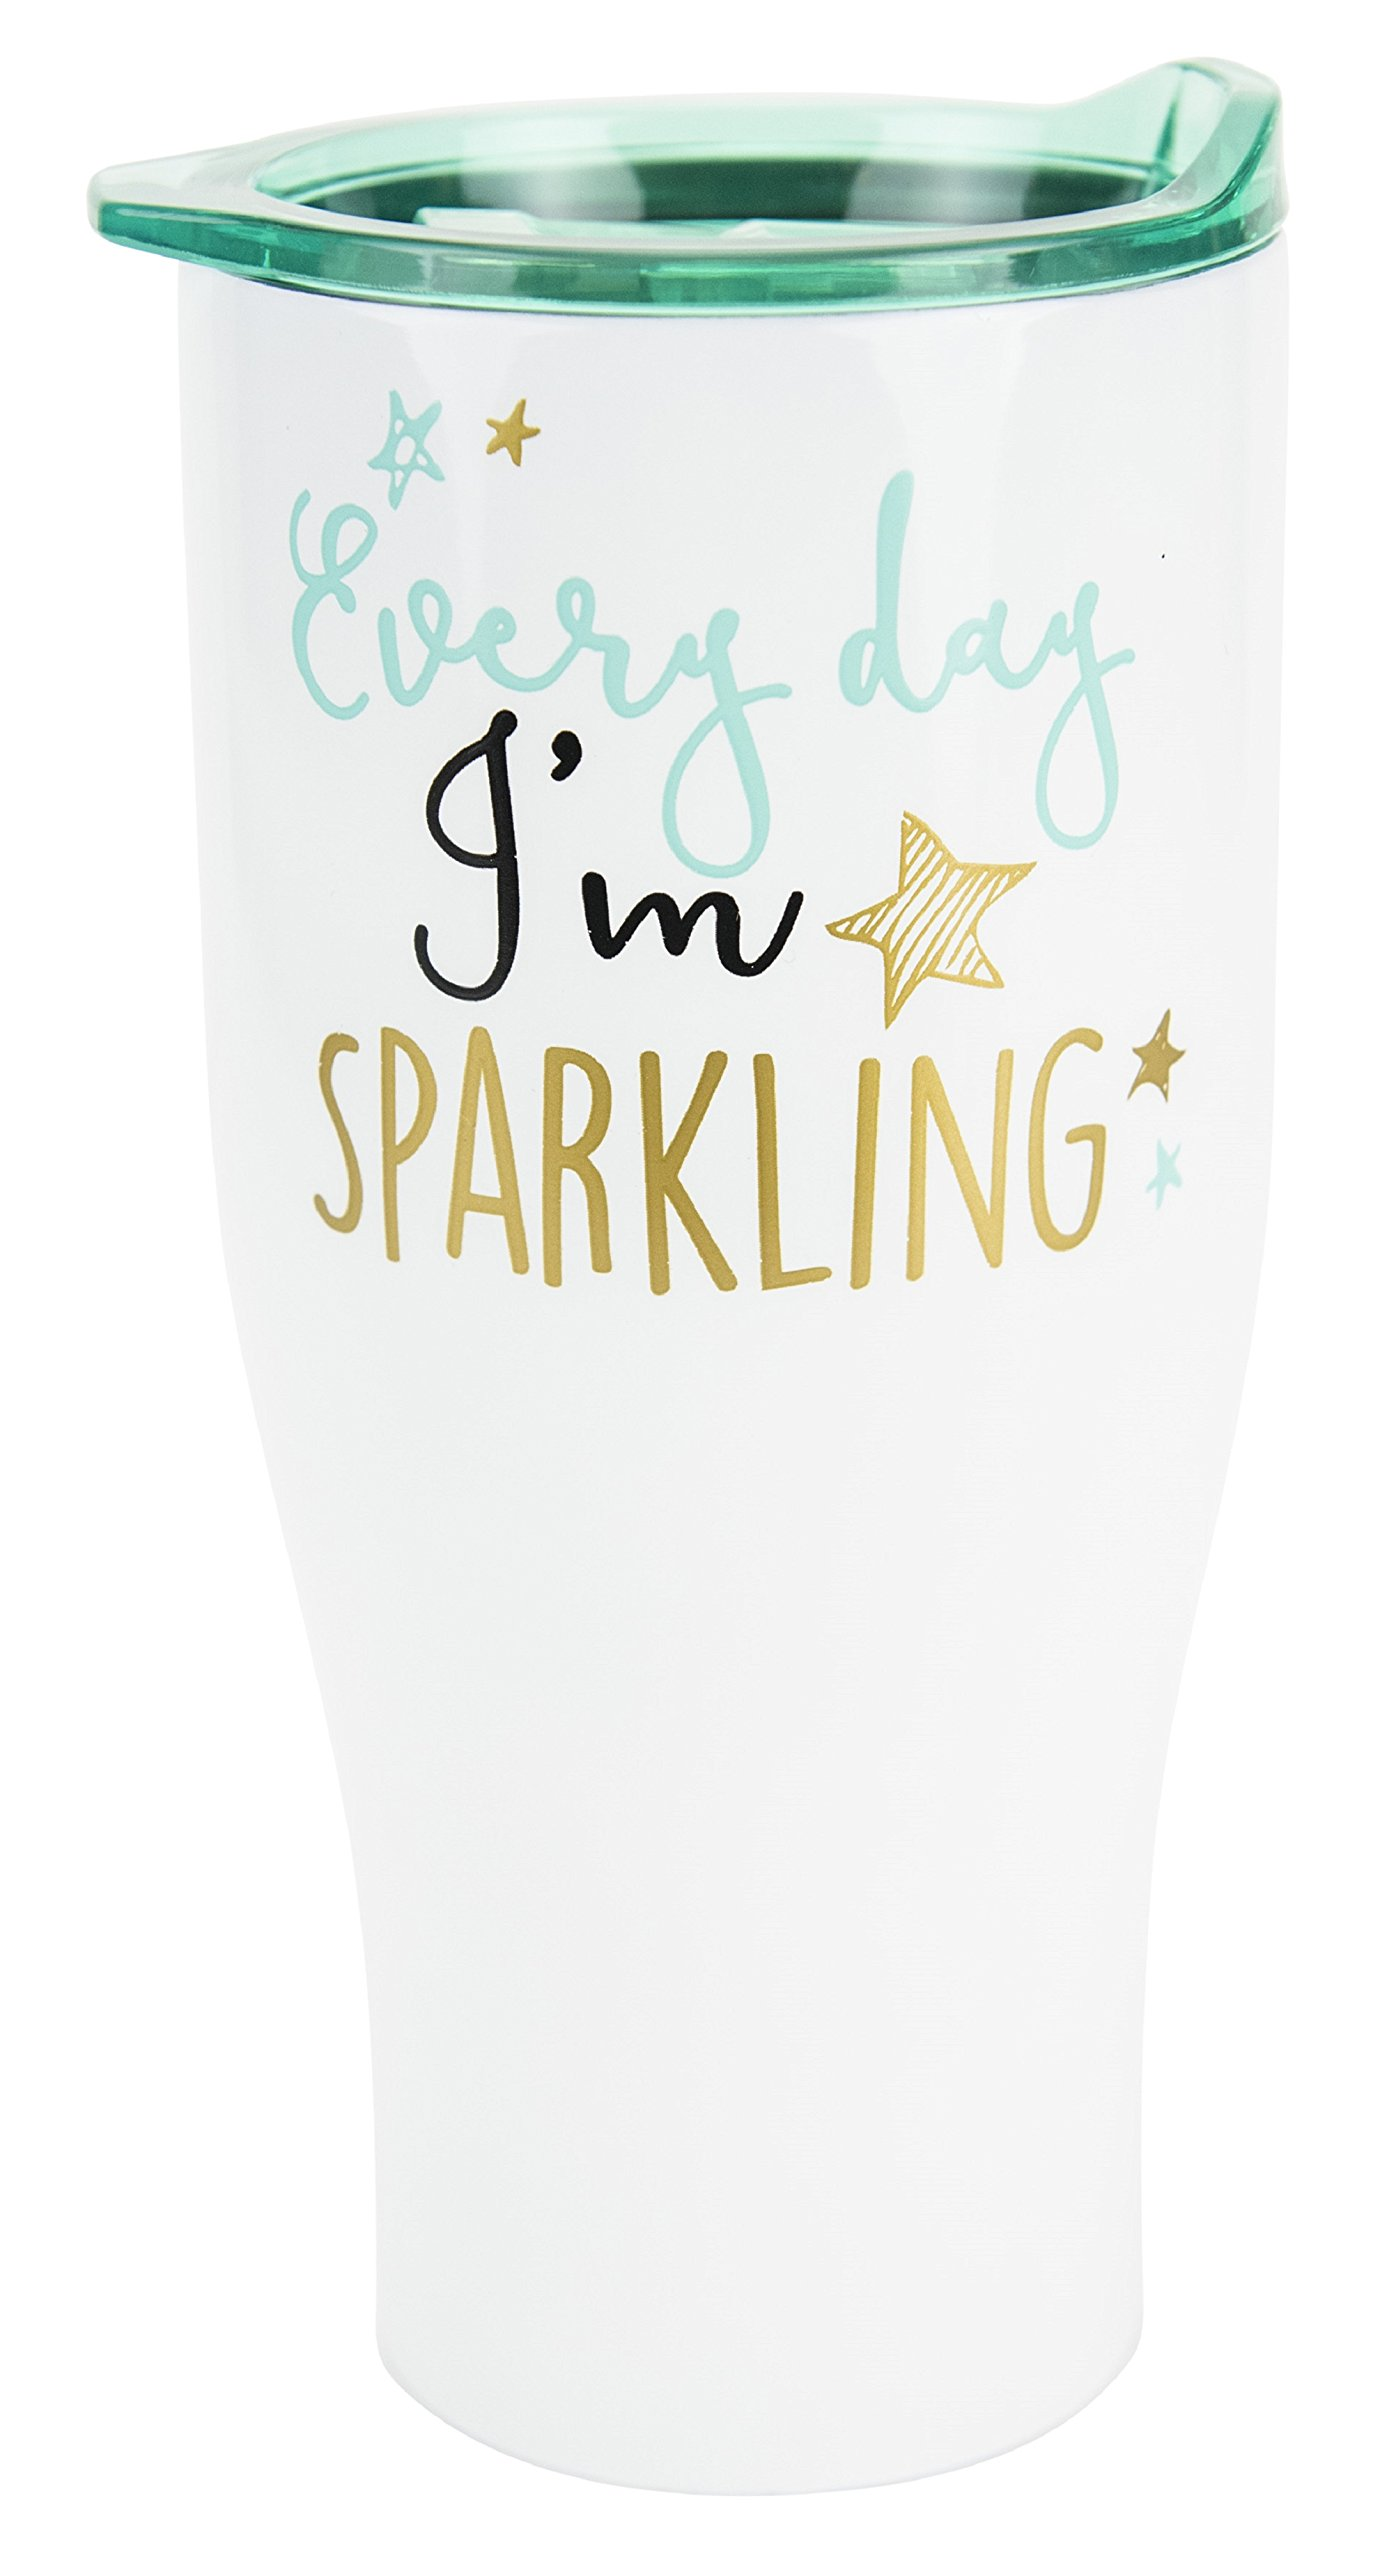 Boston Warehouse 30-Ounce Stainless Steel Insulated Double Wall Travel Tumbler with Lid, Glossy White- Every Day I'm Sparkling